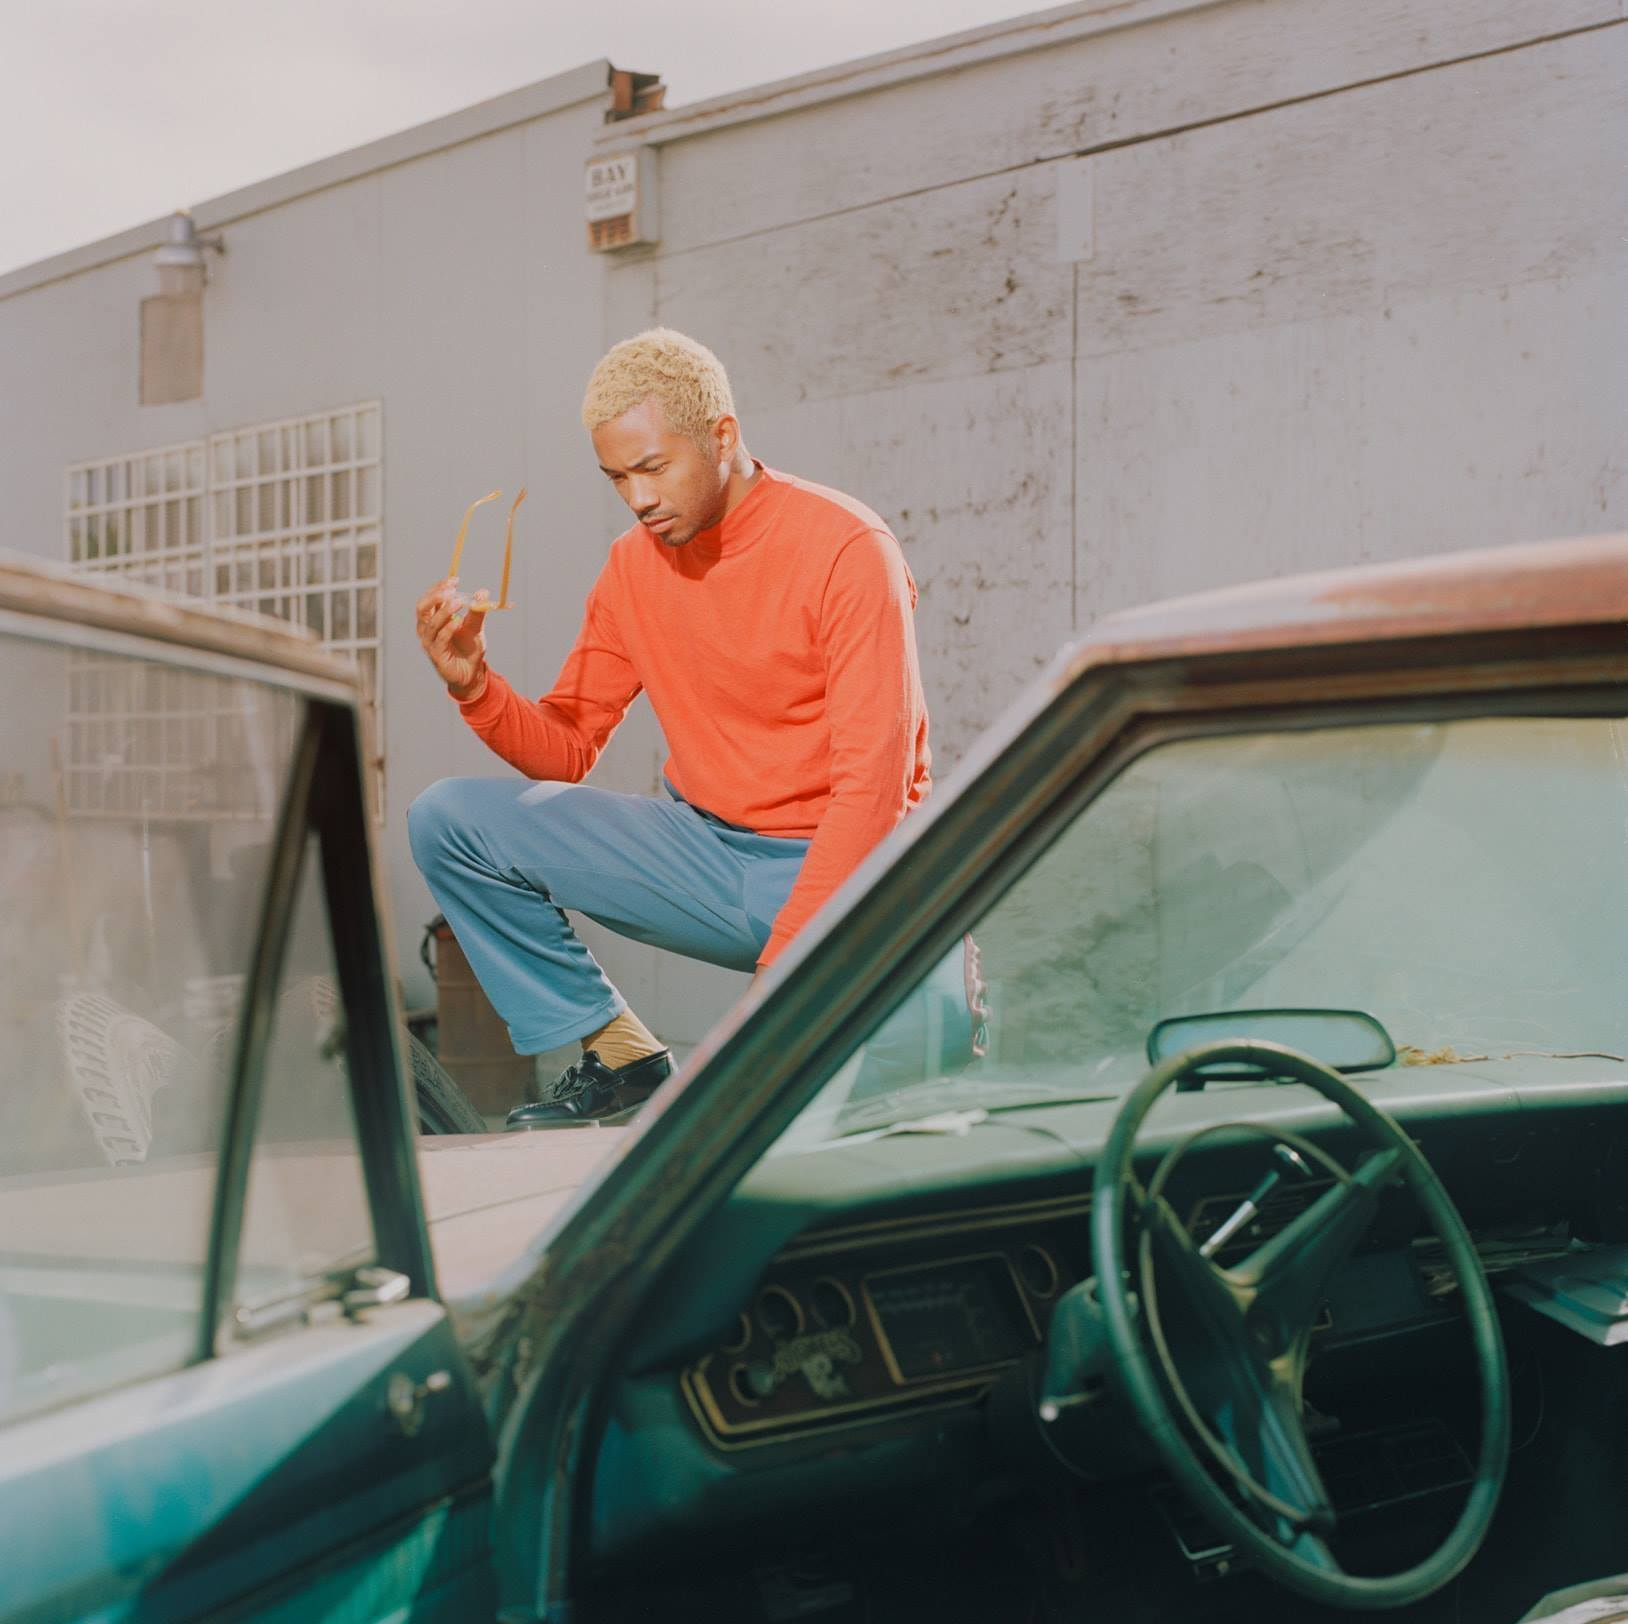 Toro y Moi dons Les Sins alias for collaborative EP with AceMo, 'C'mon Les' Go'44536606 10157216654472502 3218207445725741056 O